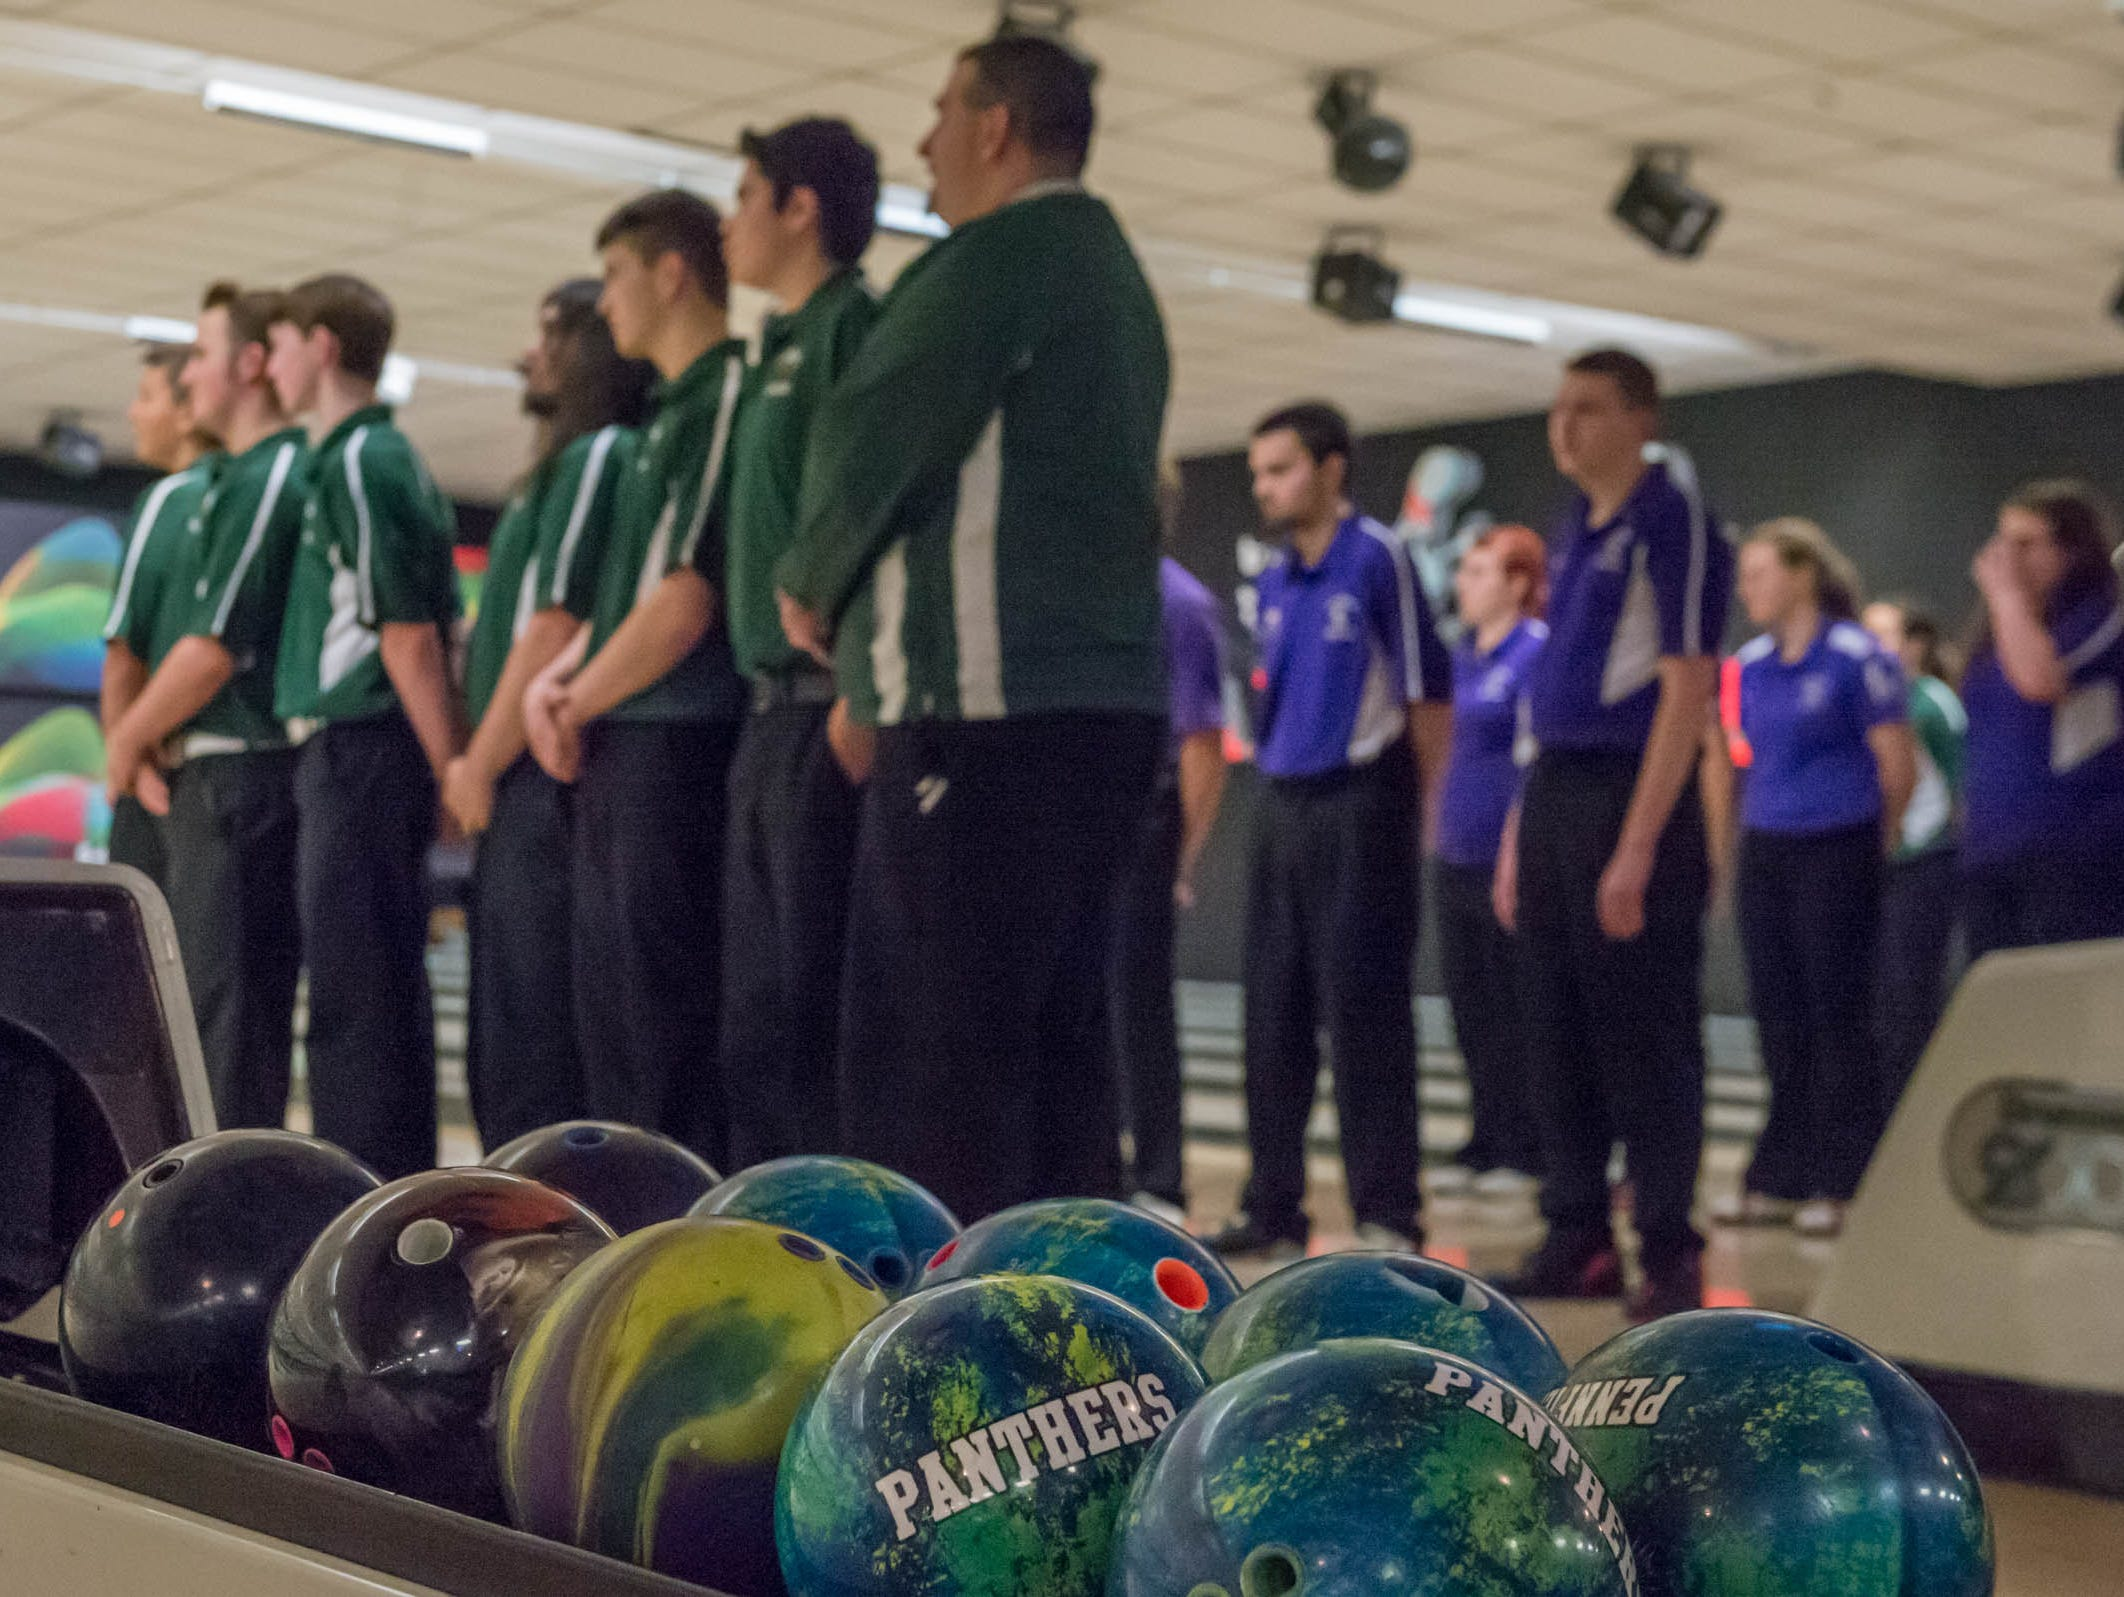 Highs school bowlers from Pennfield and Lakeview line up during national anthem at Nottke's Bowling on Thursday.